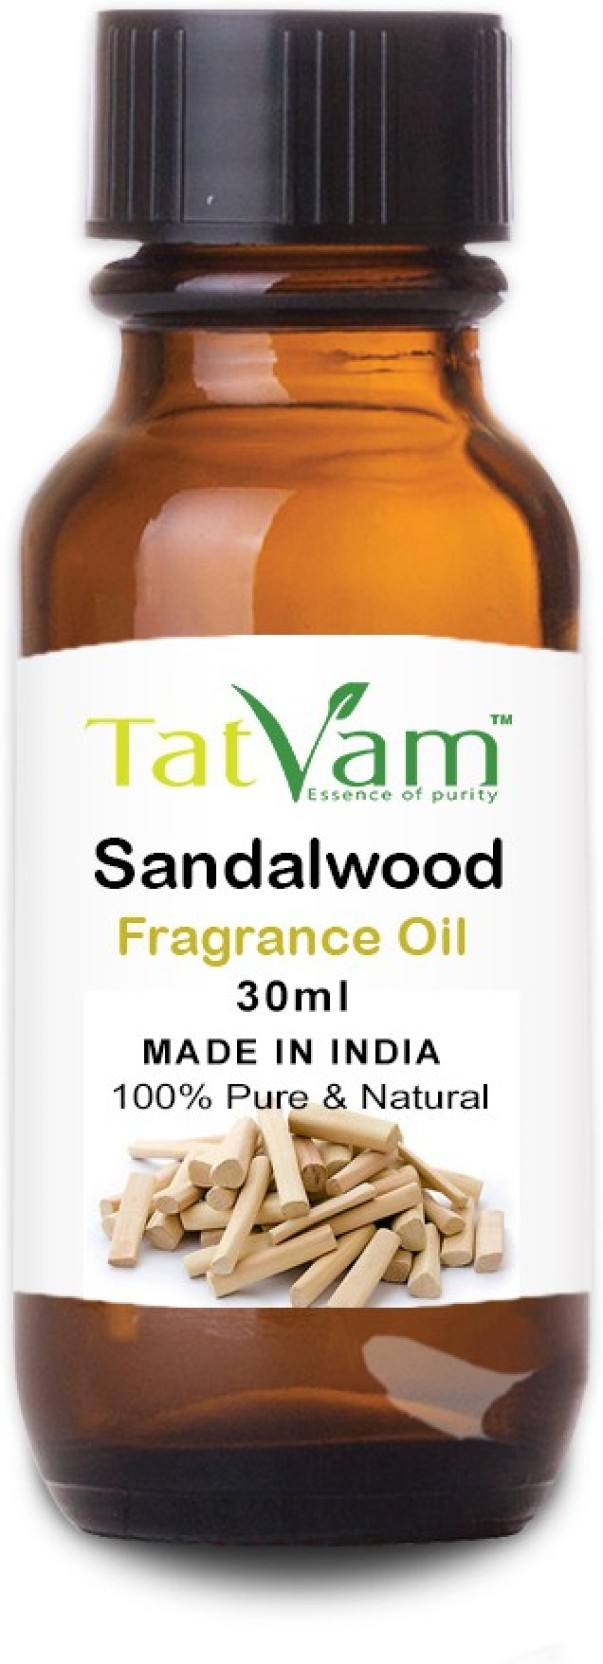 Tatvam sandalwood Fragrance Oil for Soap/ Candle Making - Price in